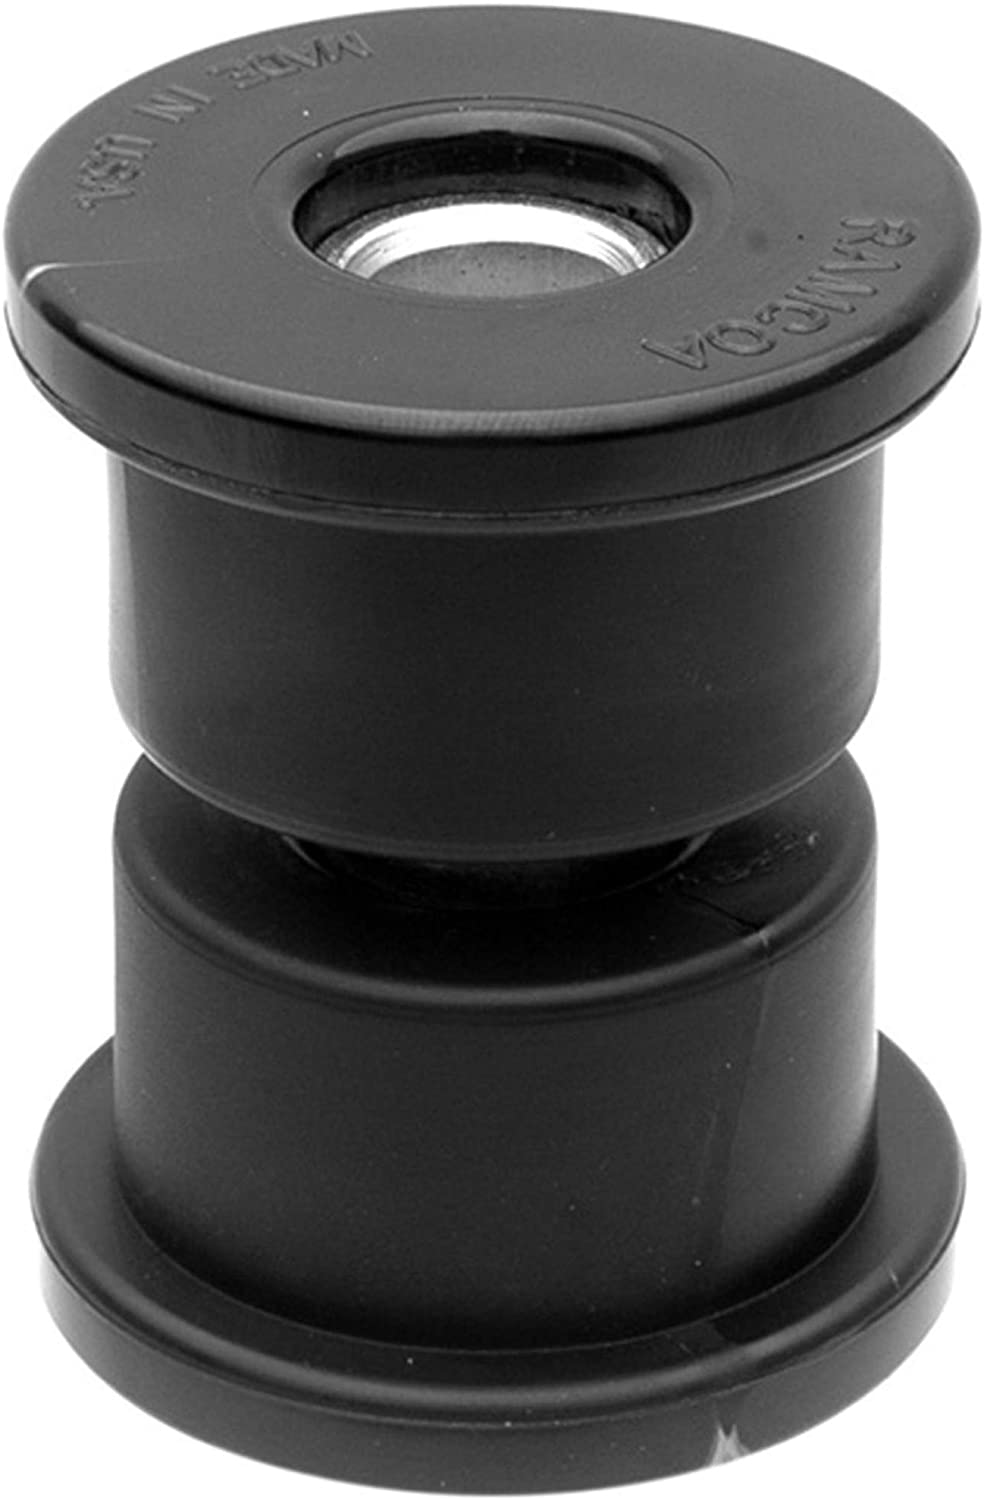 Lower Front Suspension Control Arm Assembly Bushing McQuay-Norris FB994